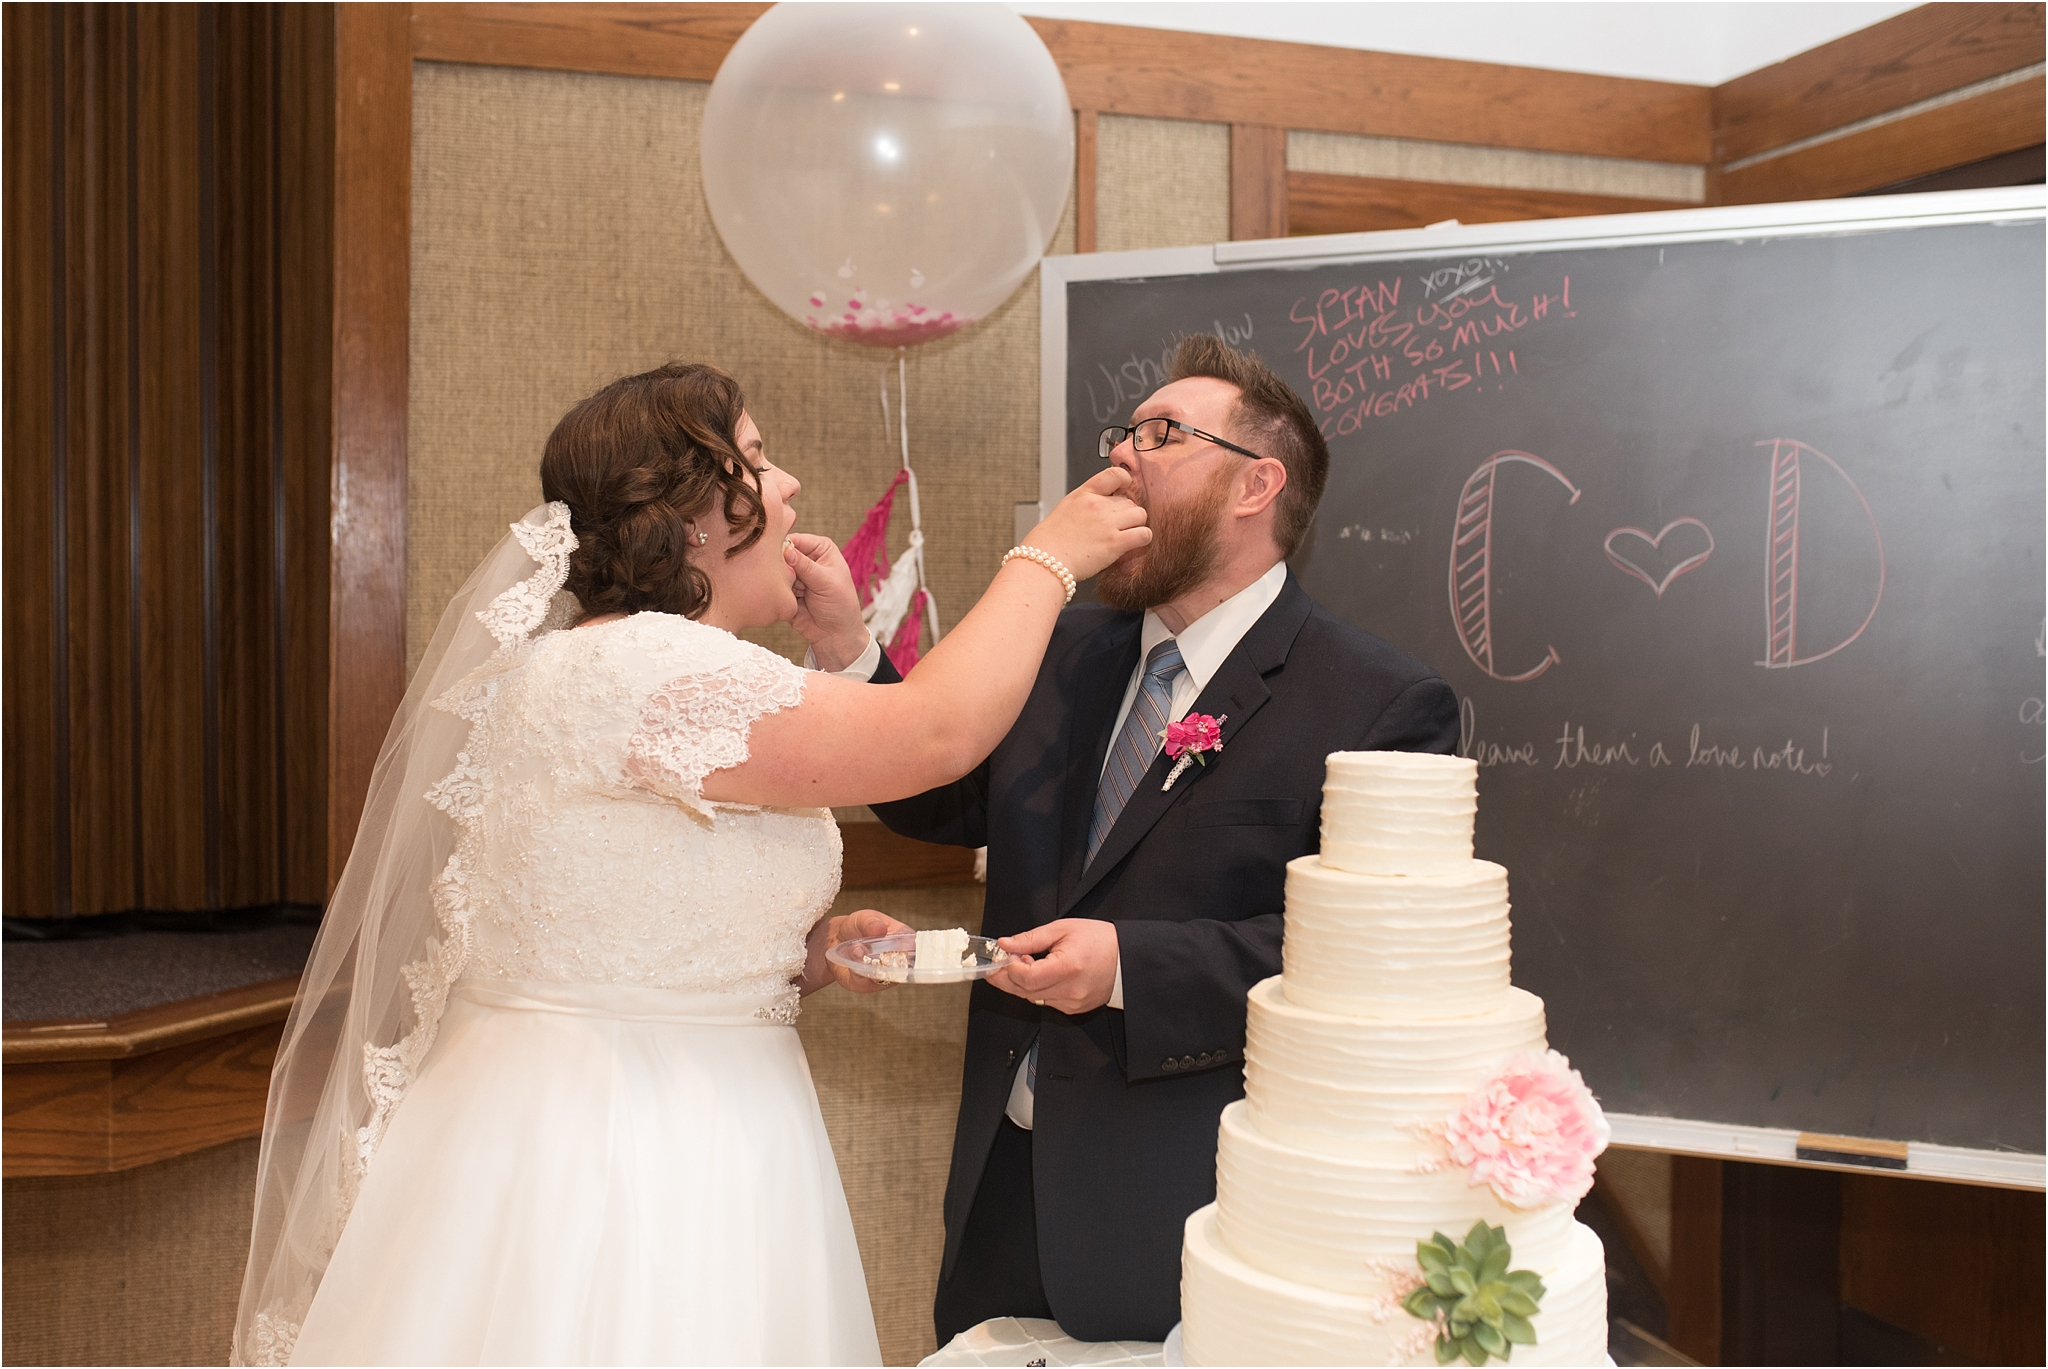 kayla kitts photography - albuquerque wedding photographer - hairpins and scissors - a cake odyssey - new mexico wedding photographer_0139.jpg